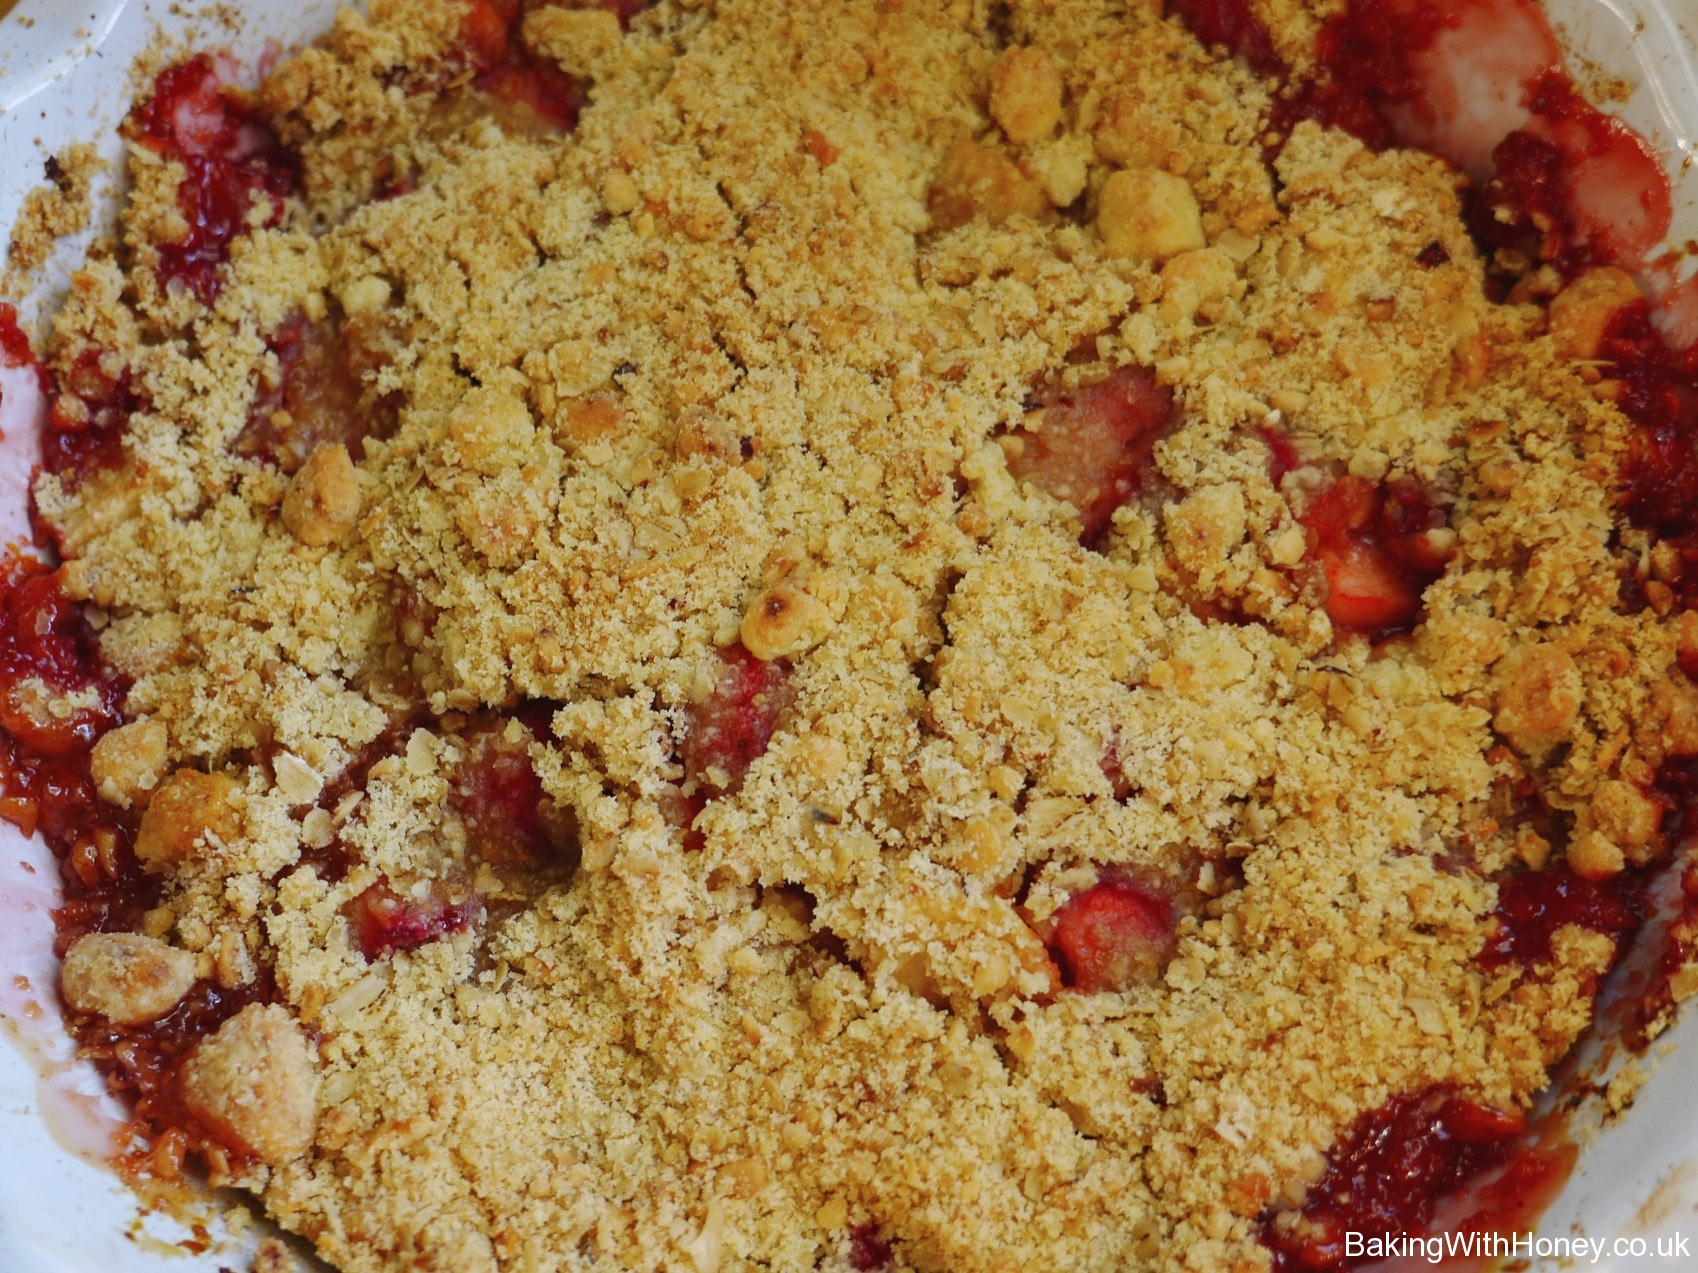 Strawberry & Caerphilly Cheese Summer Crumble